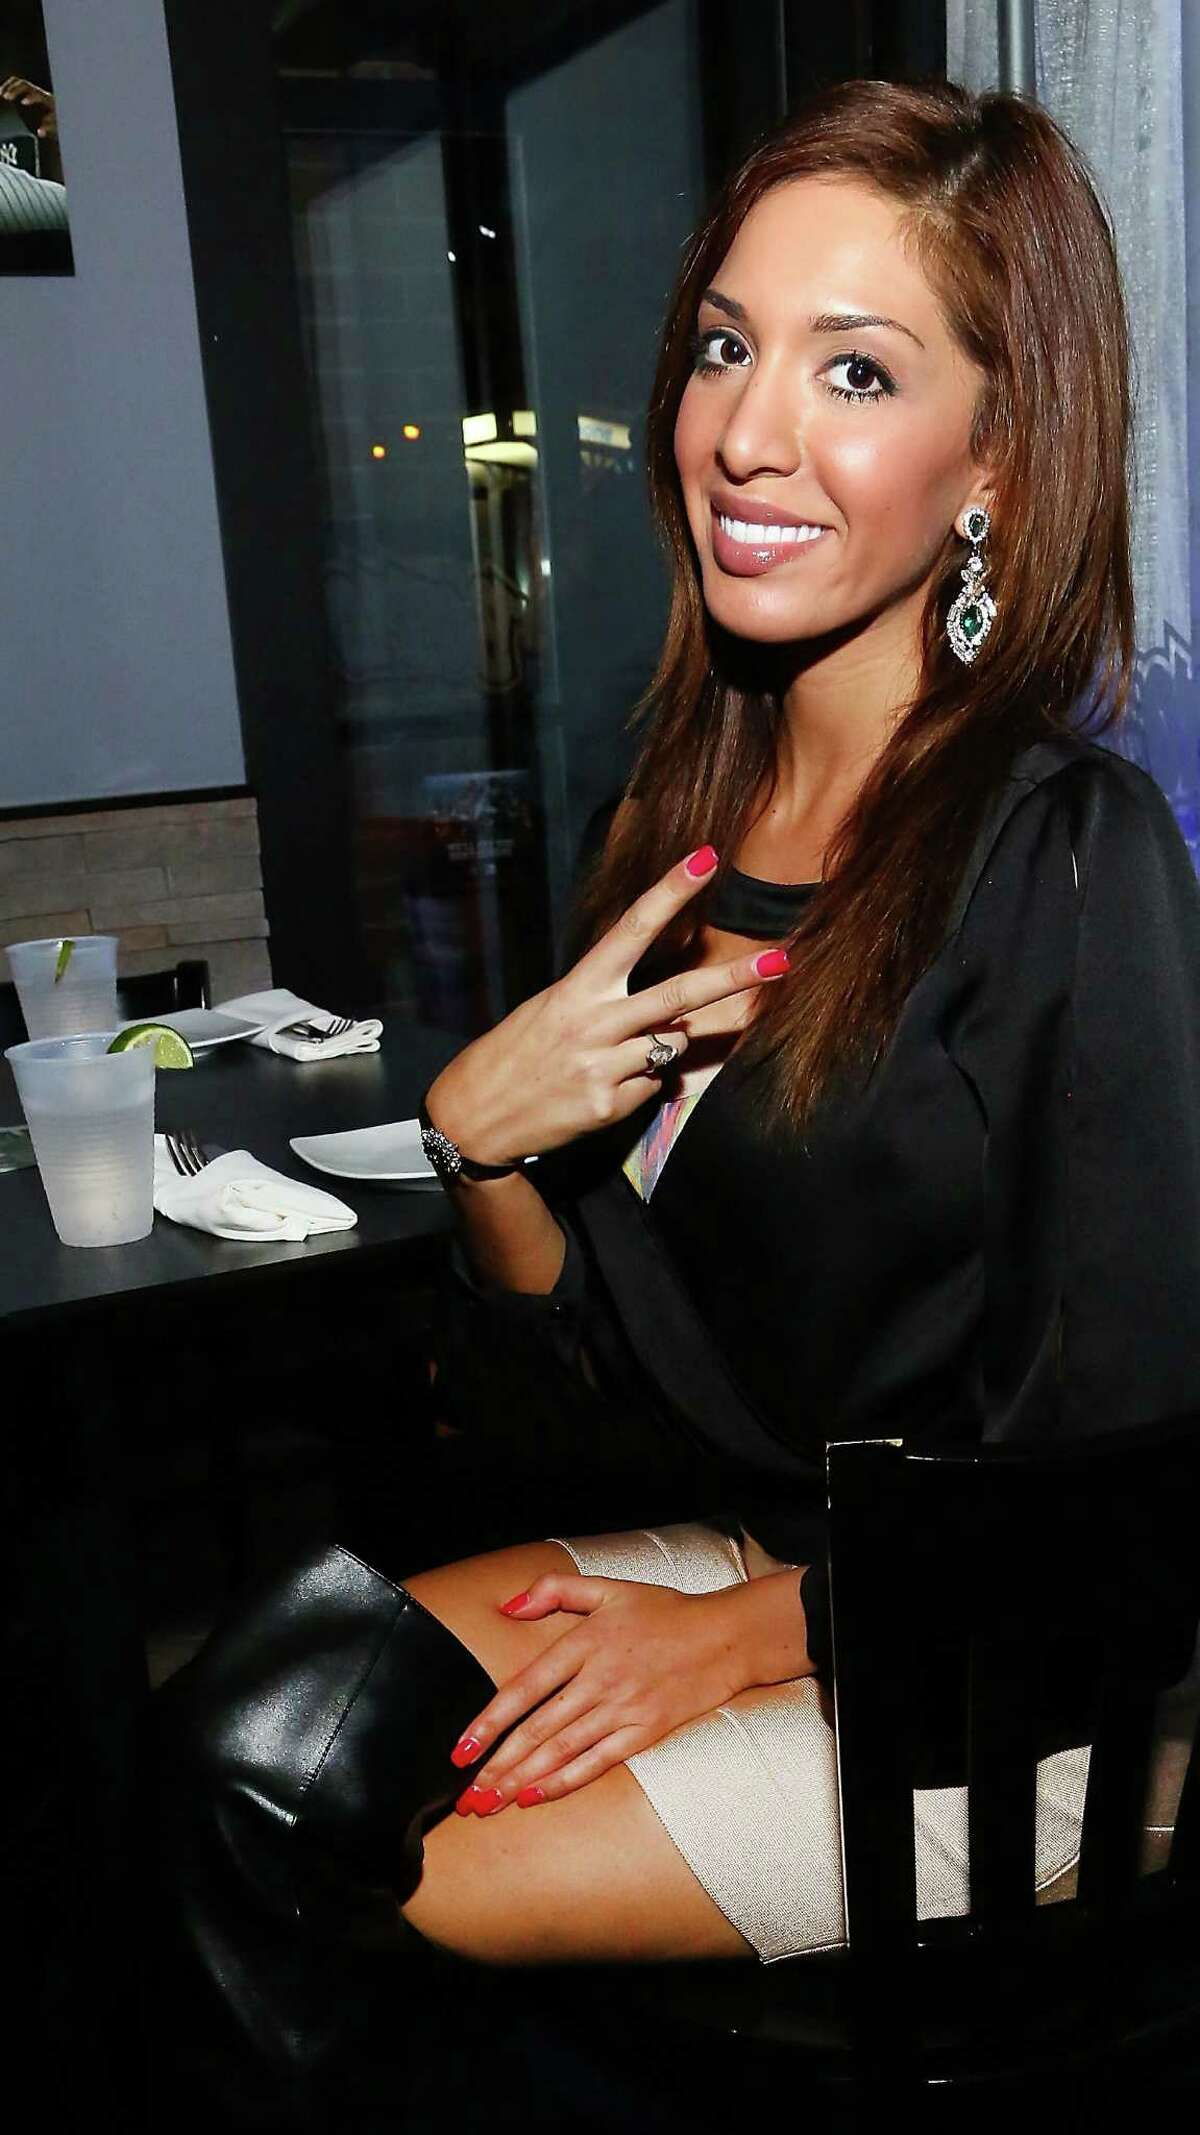 """Farrah Abraham, former star of MTV's """"Teen Mom"""" who now appears on a VH1 show, is living the American Dream of pointless notoriety."""